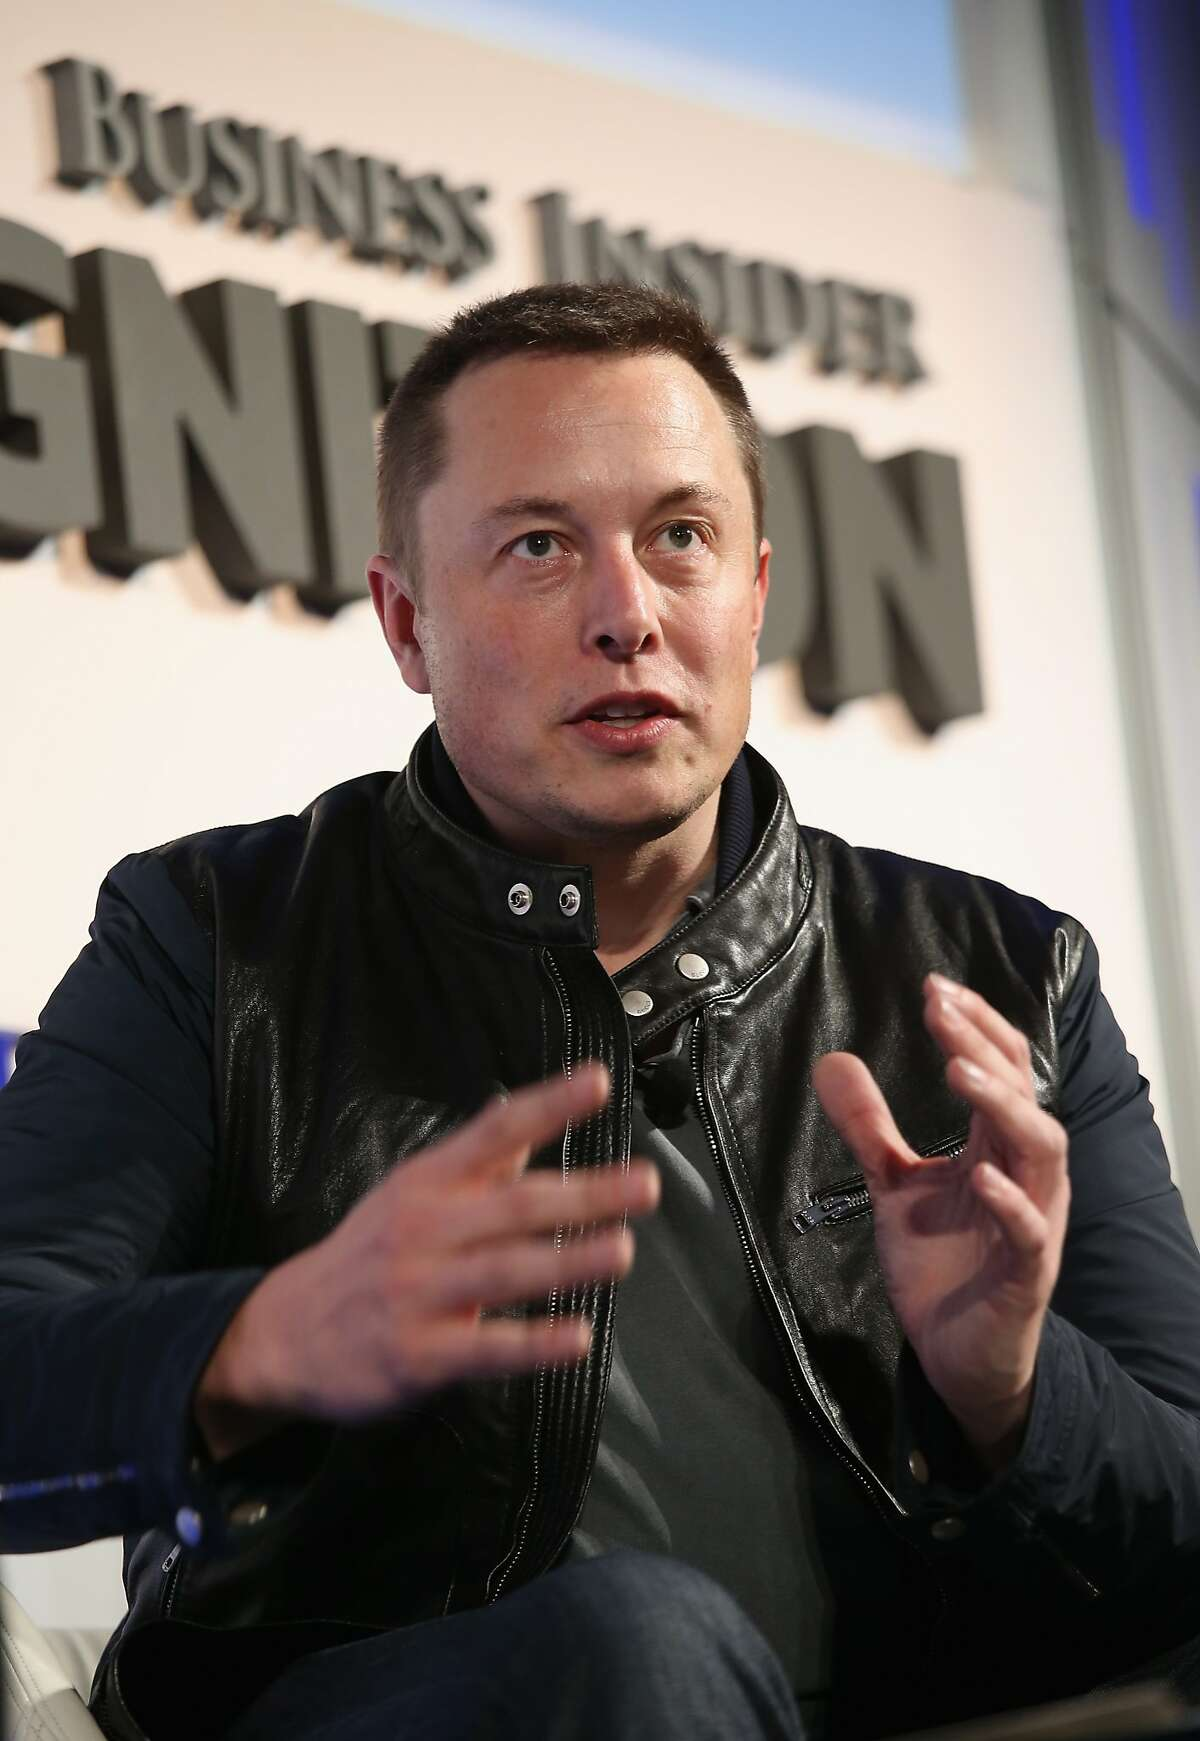 Telsa CEO Elon Musk speaks at the Ignition Future of Digital business conference on November 12, 2013 in New York City.